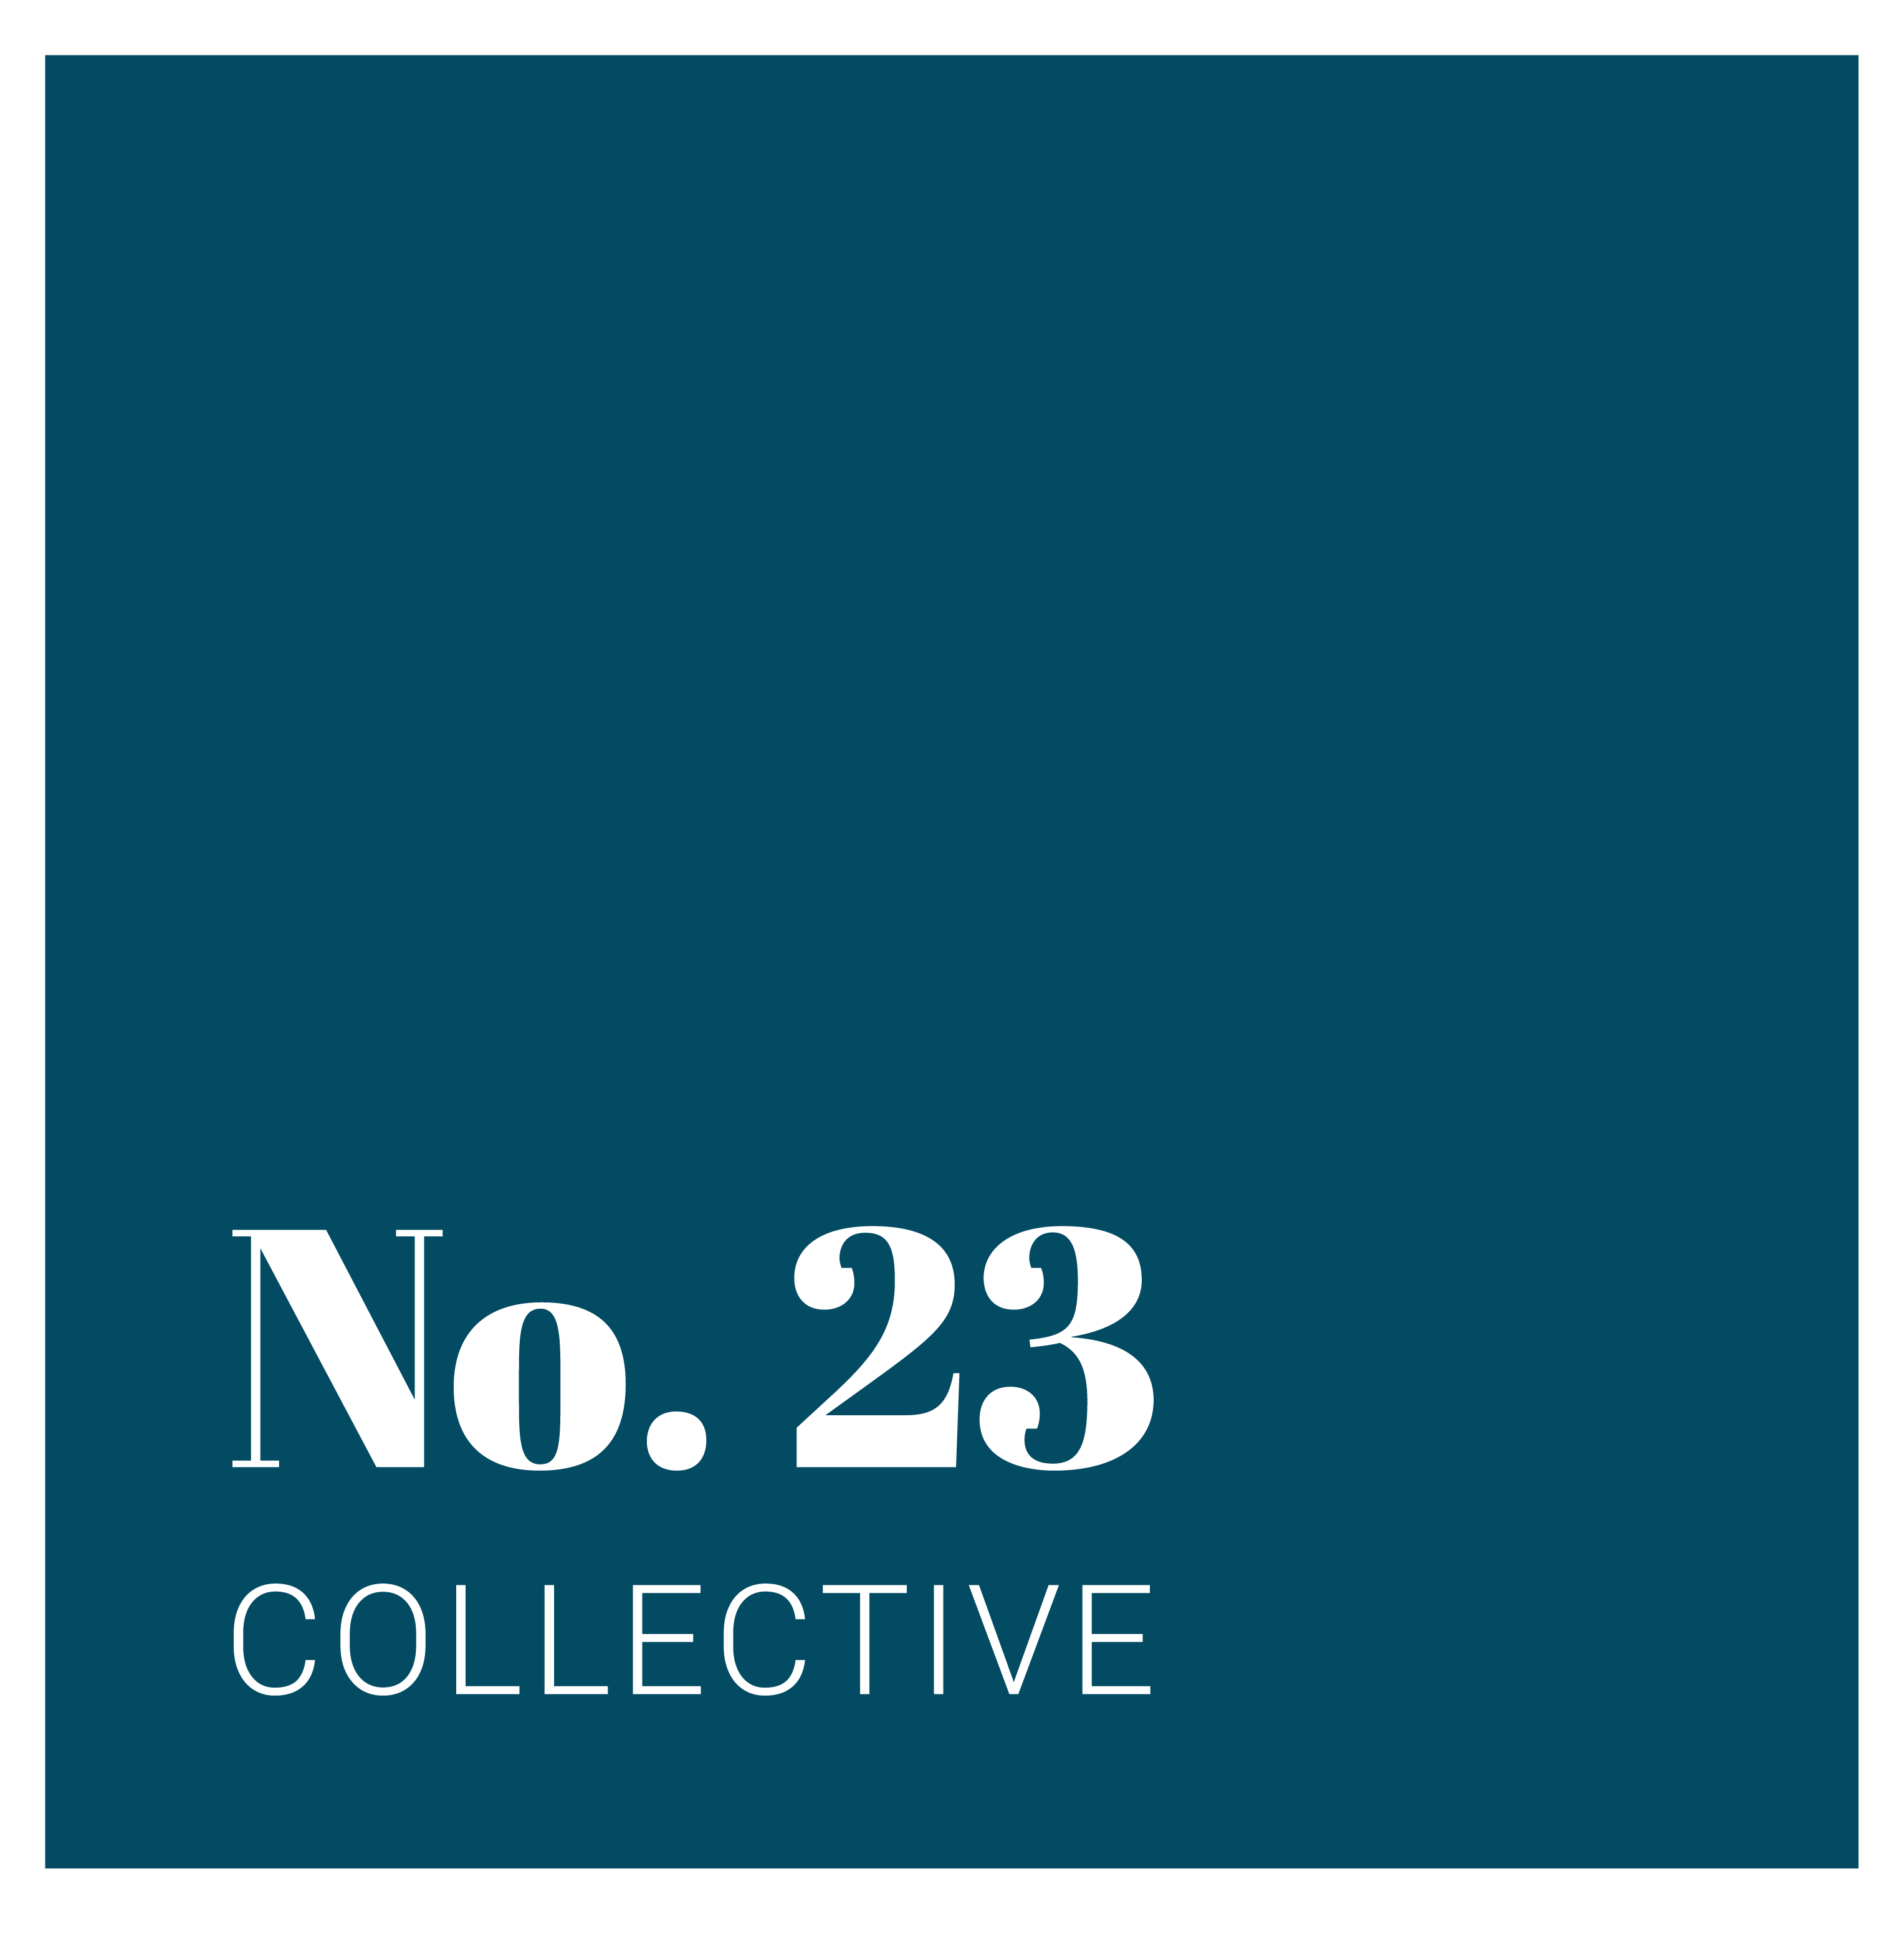 No.23 Collective